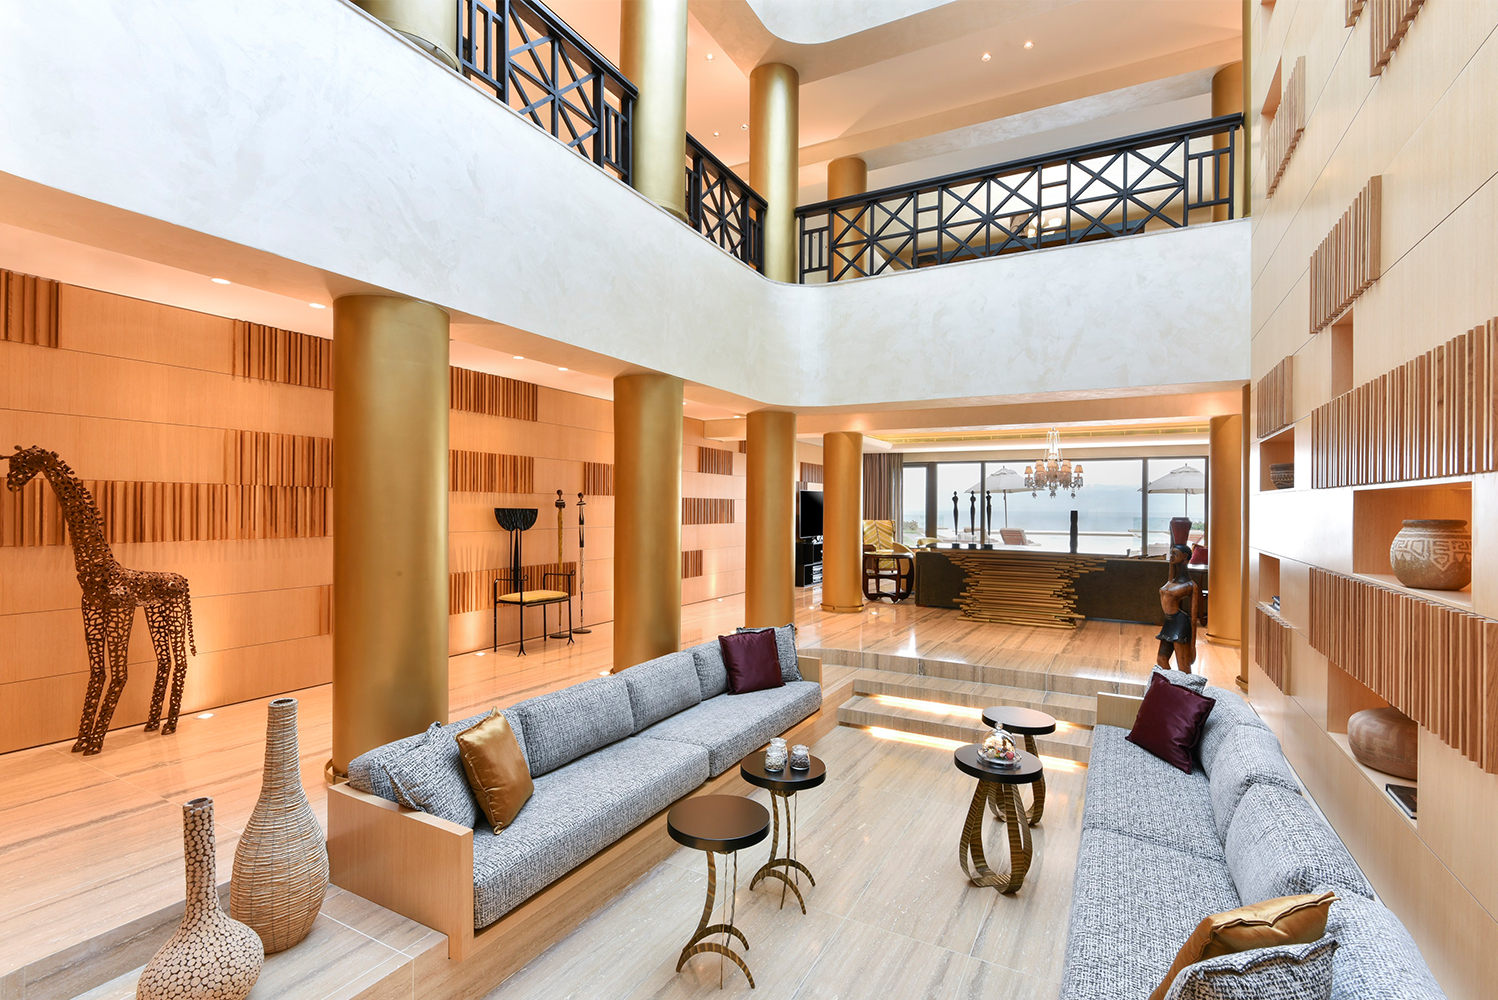 Kempinski Hotel Ishtar Dead Sea – a property located in the Dead Sea, Jordan – completed a $1.5 million renovation project of its two Ishtar Royal Villas.